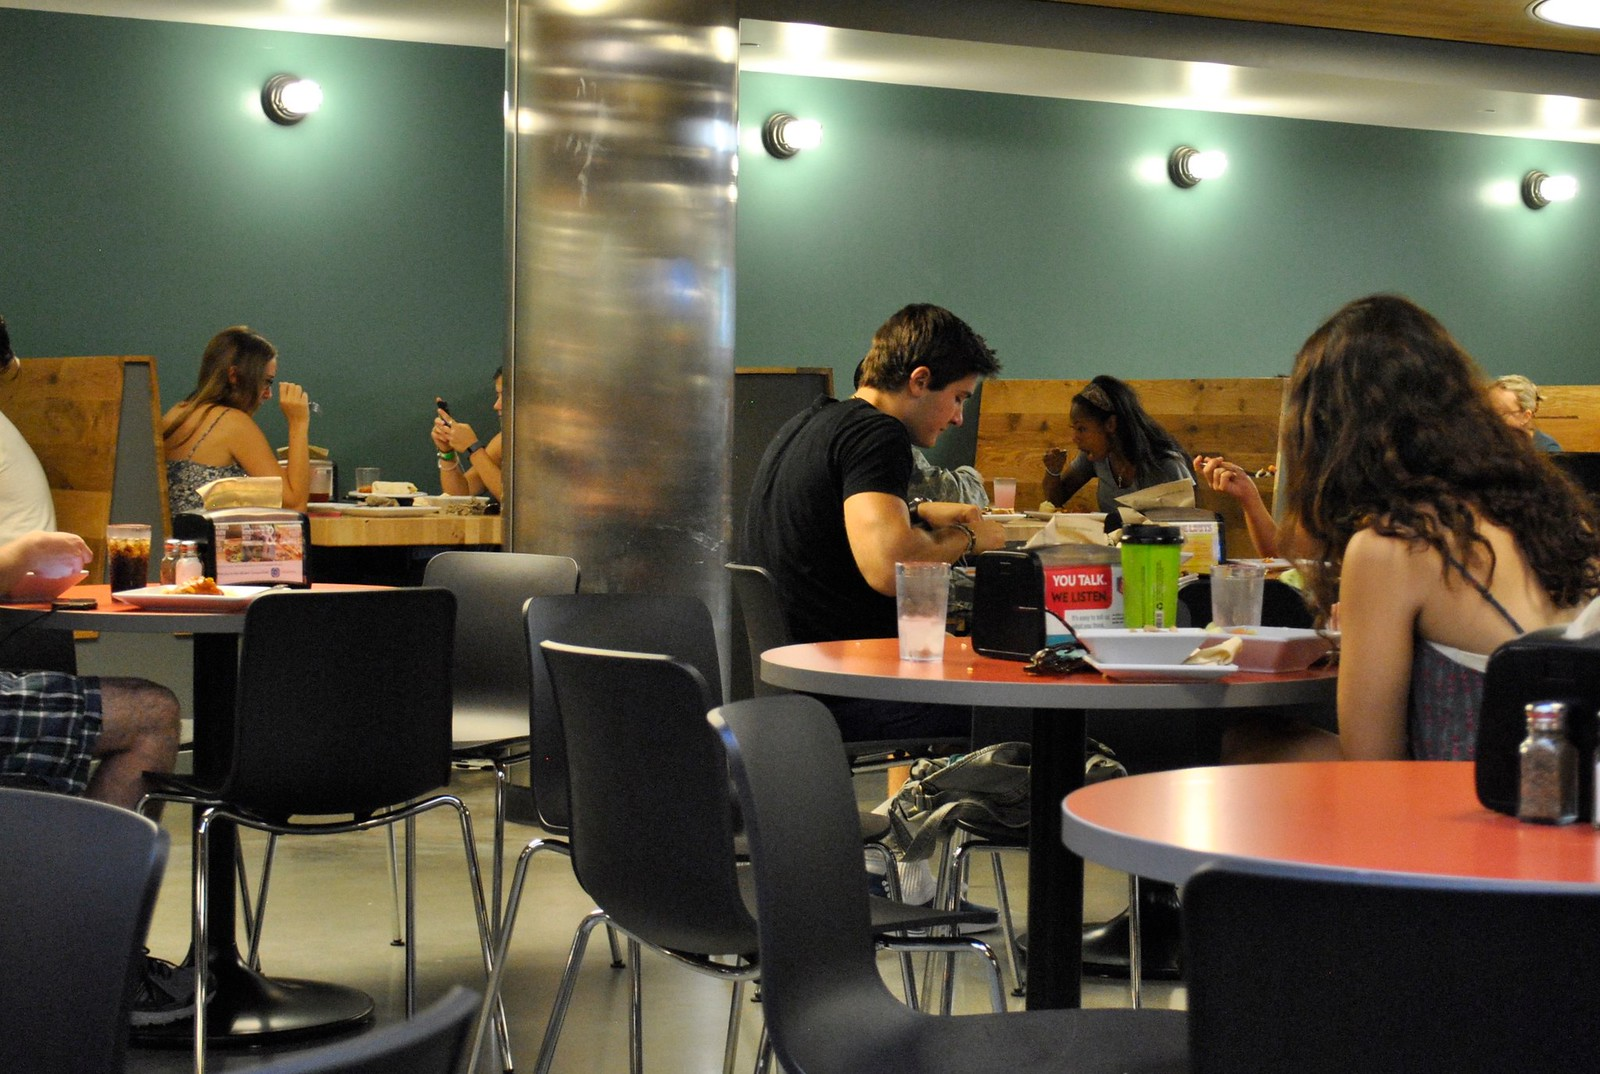 New changes arriving at university dining